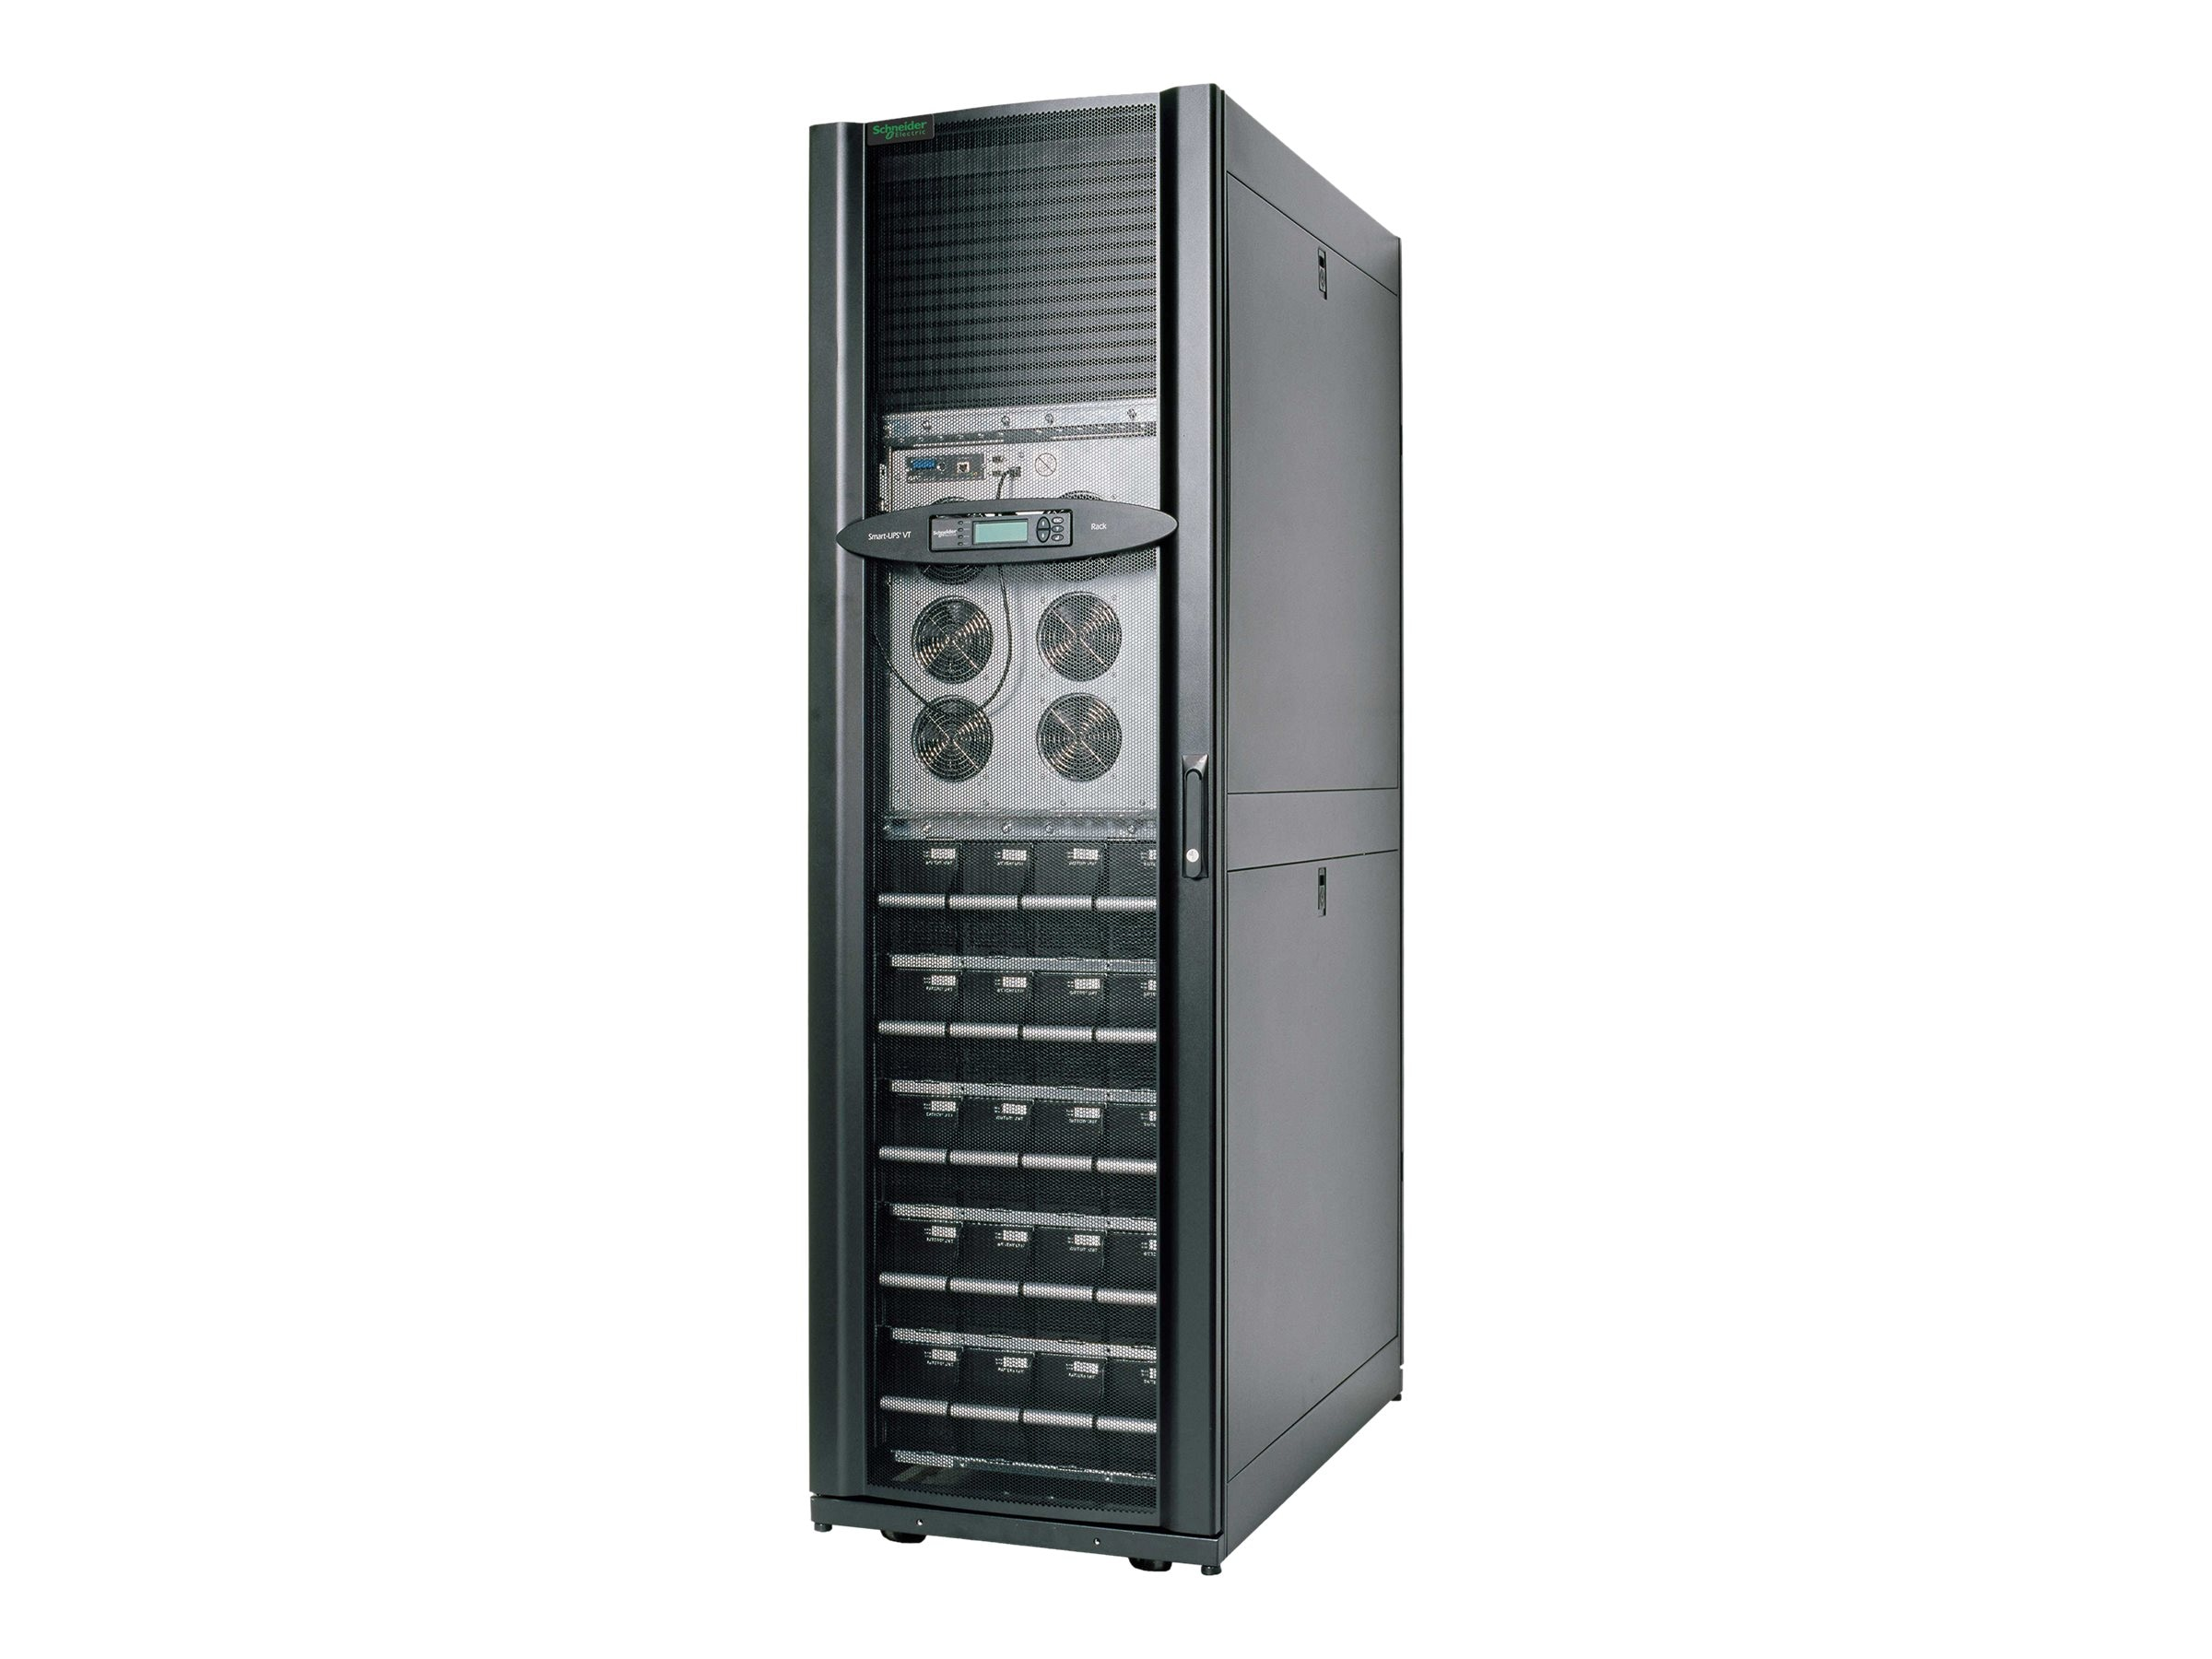 APC Smart-UPS VT 20kVA 208V Rack Mounted, (3) Battery Modules Expandable to (5), PDU, Startup Service, SUVTR20KF3B5S, 7699660, Battery Backup/UPS